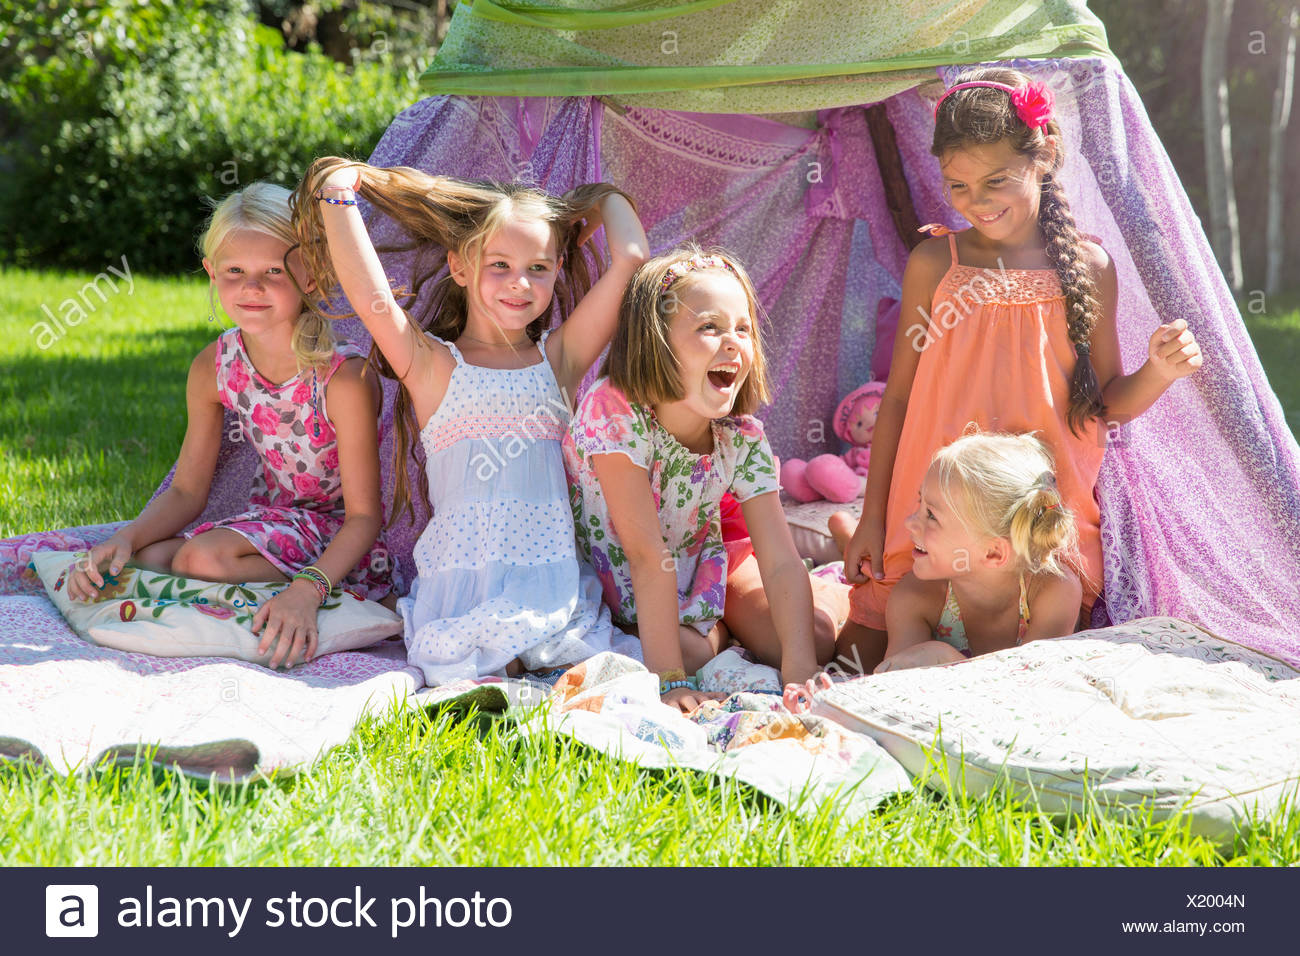 Five girls playing in garden teepee - Stock Image